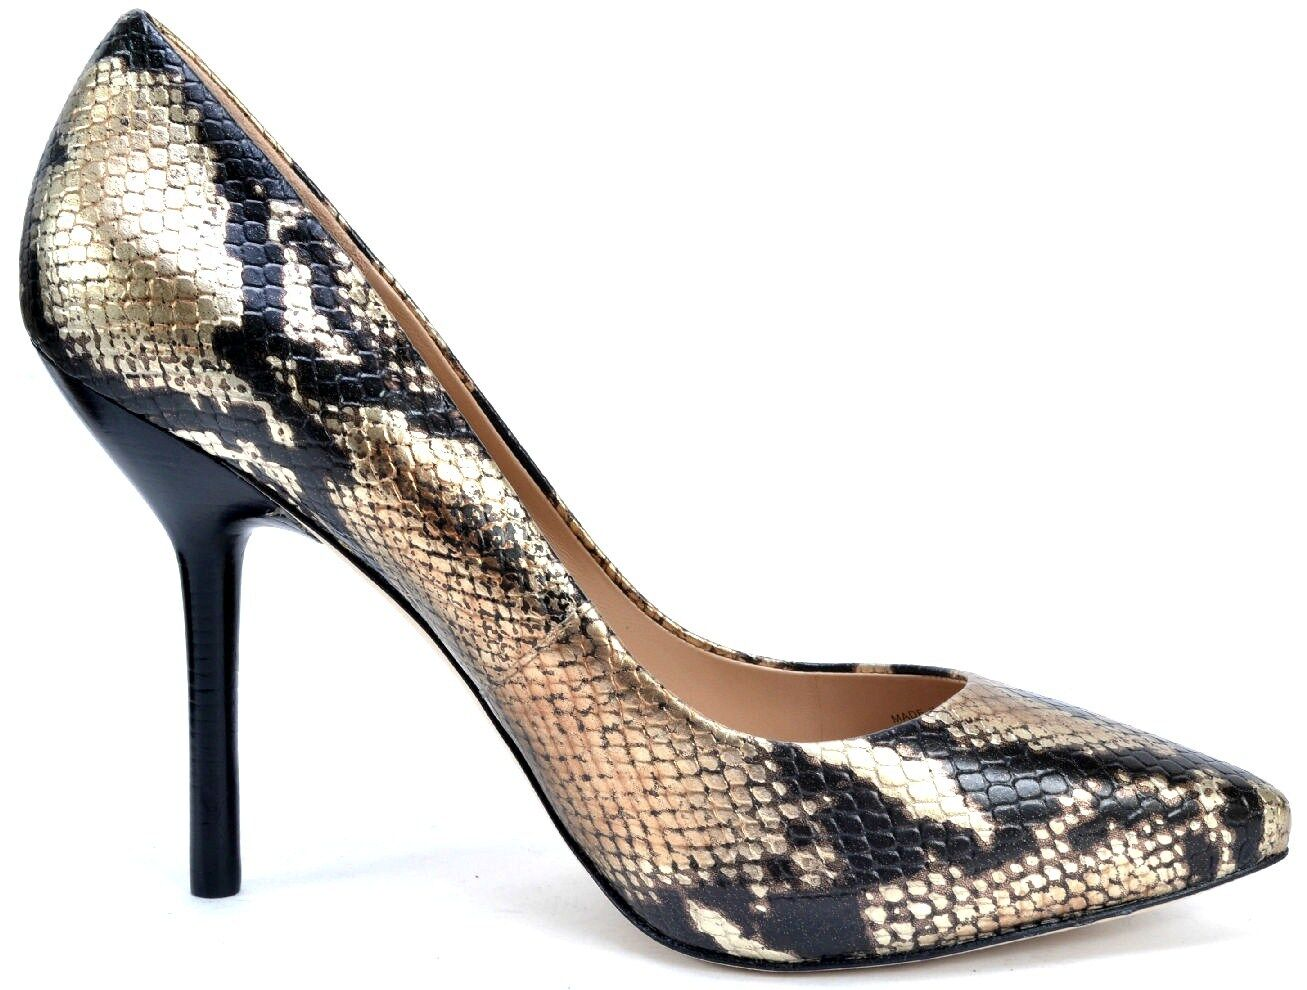 VIA SPIGA Mia, Leather shoes, Heels,, Women's Size 6.5 And 9  MSRP  198